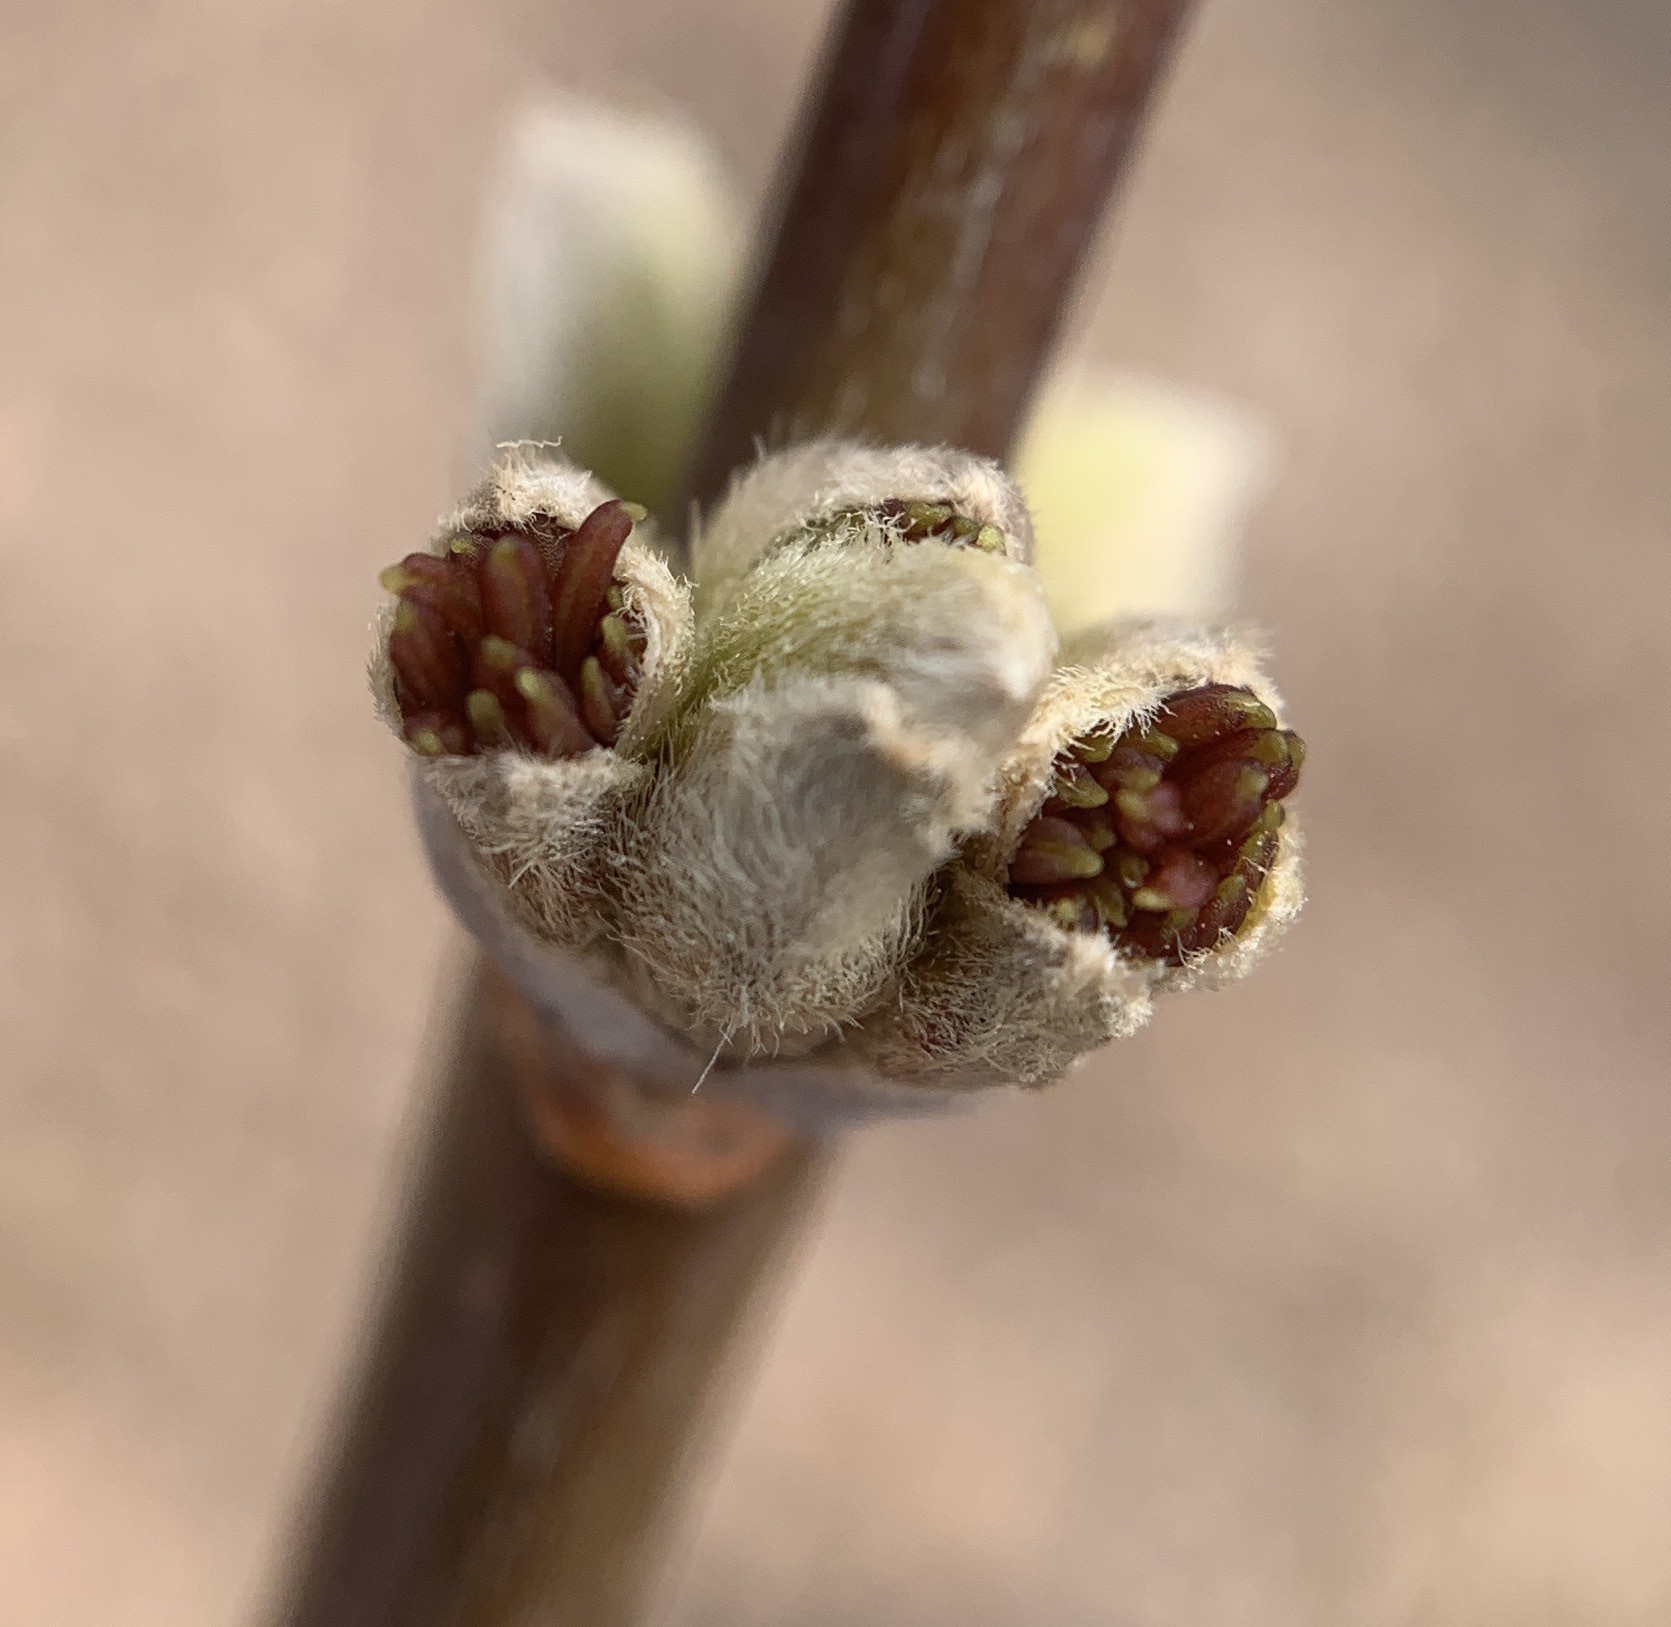 boxelder flower with stamens just protruding from the bud.